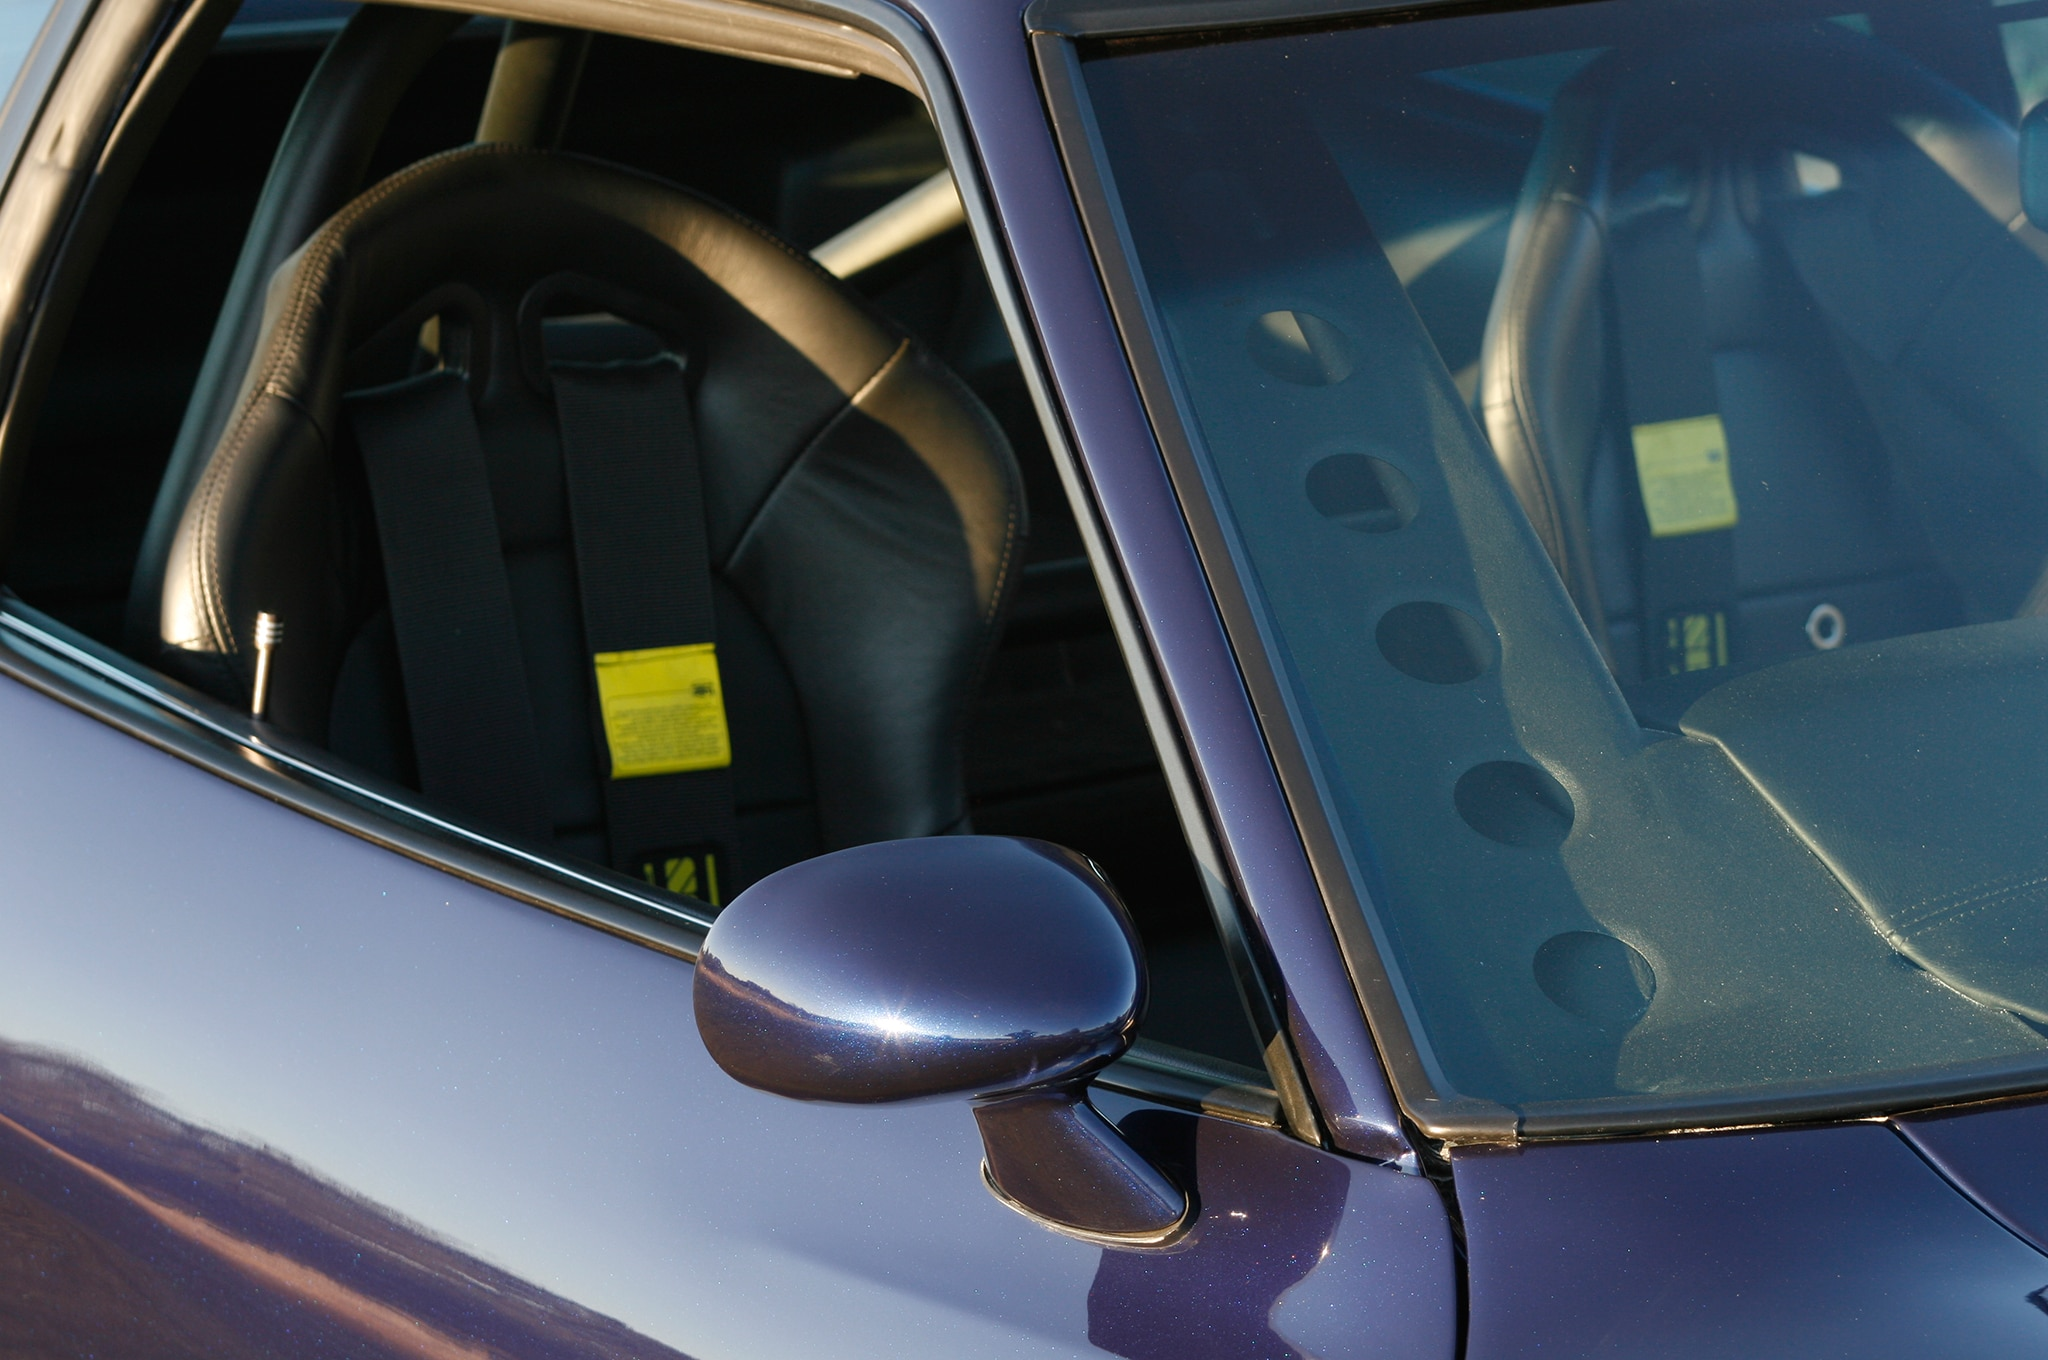 1978 Ford Mustang Rearview Mirror